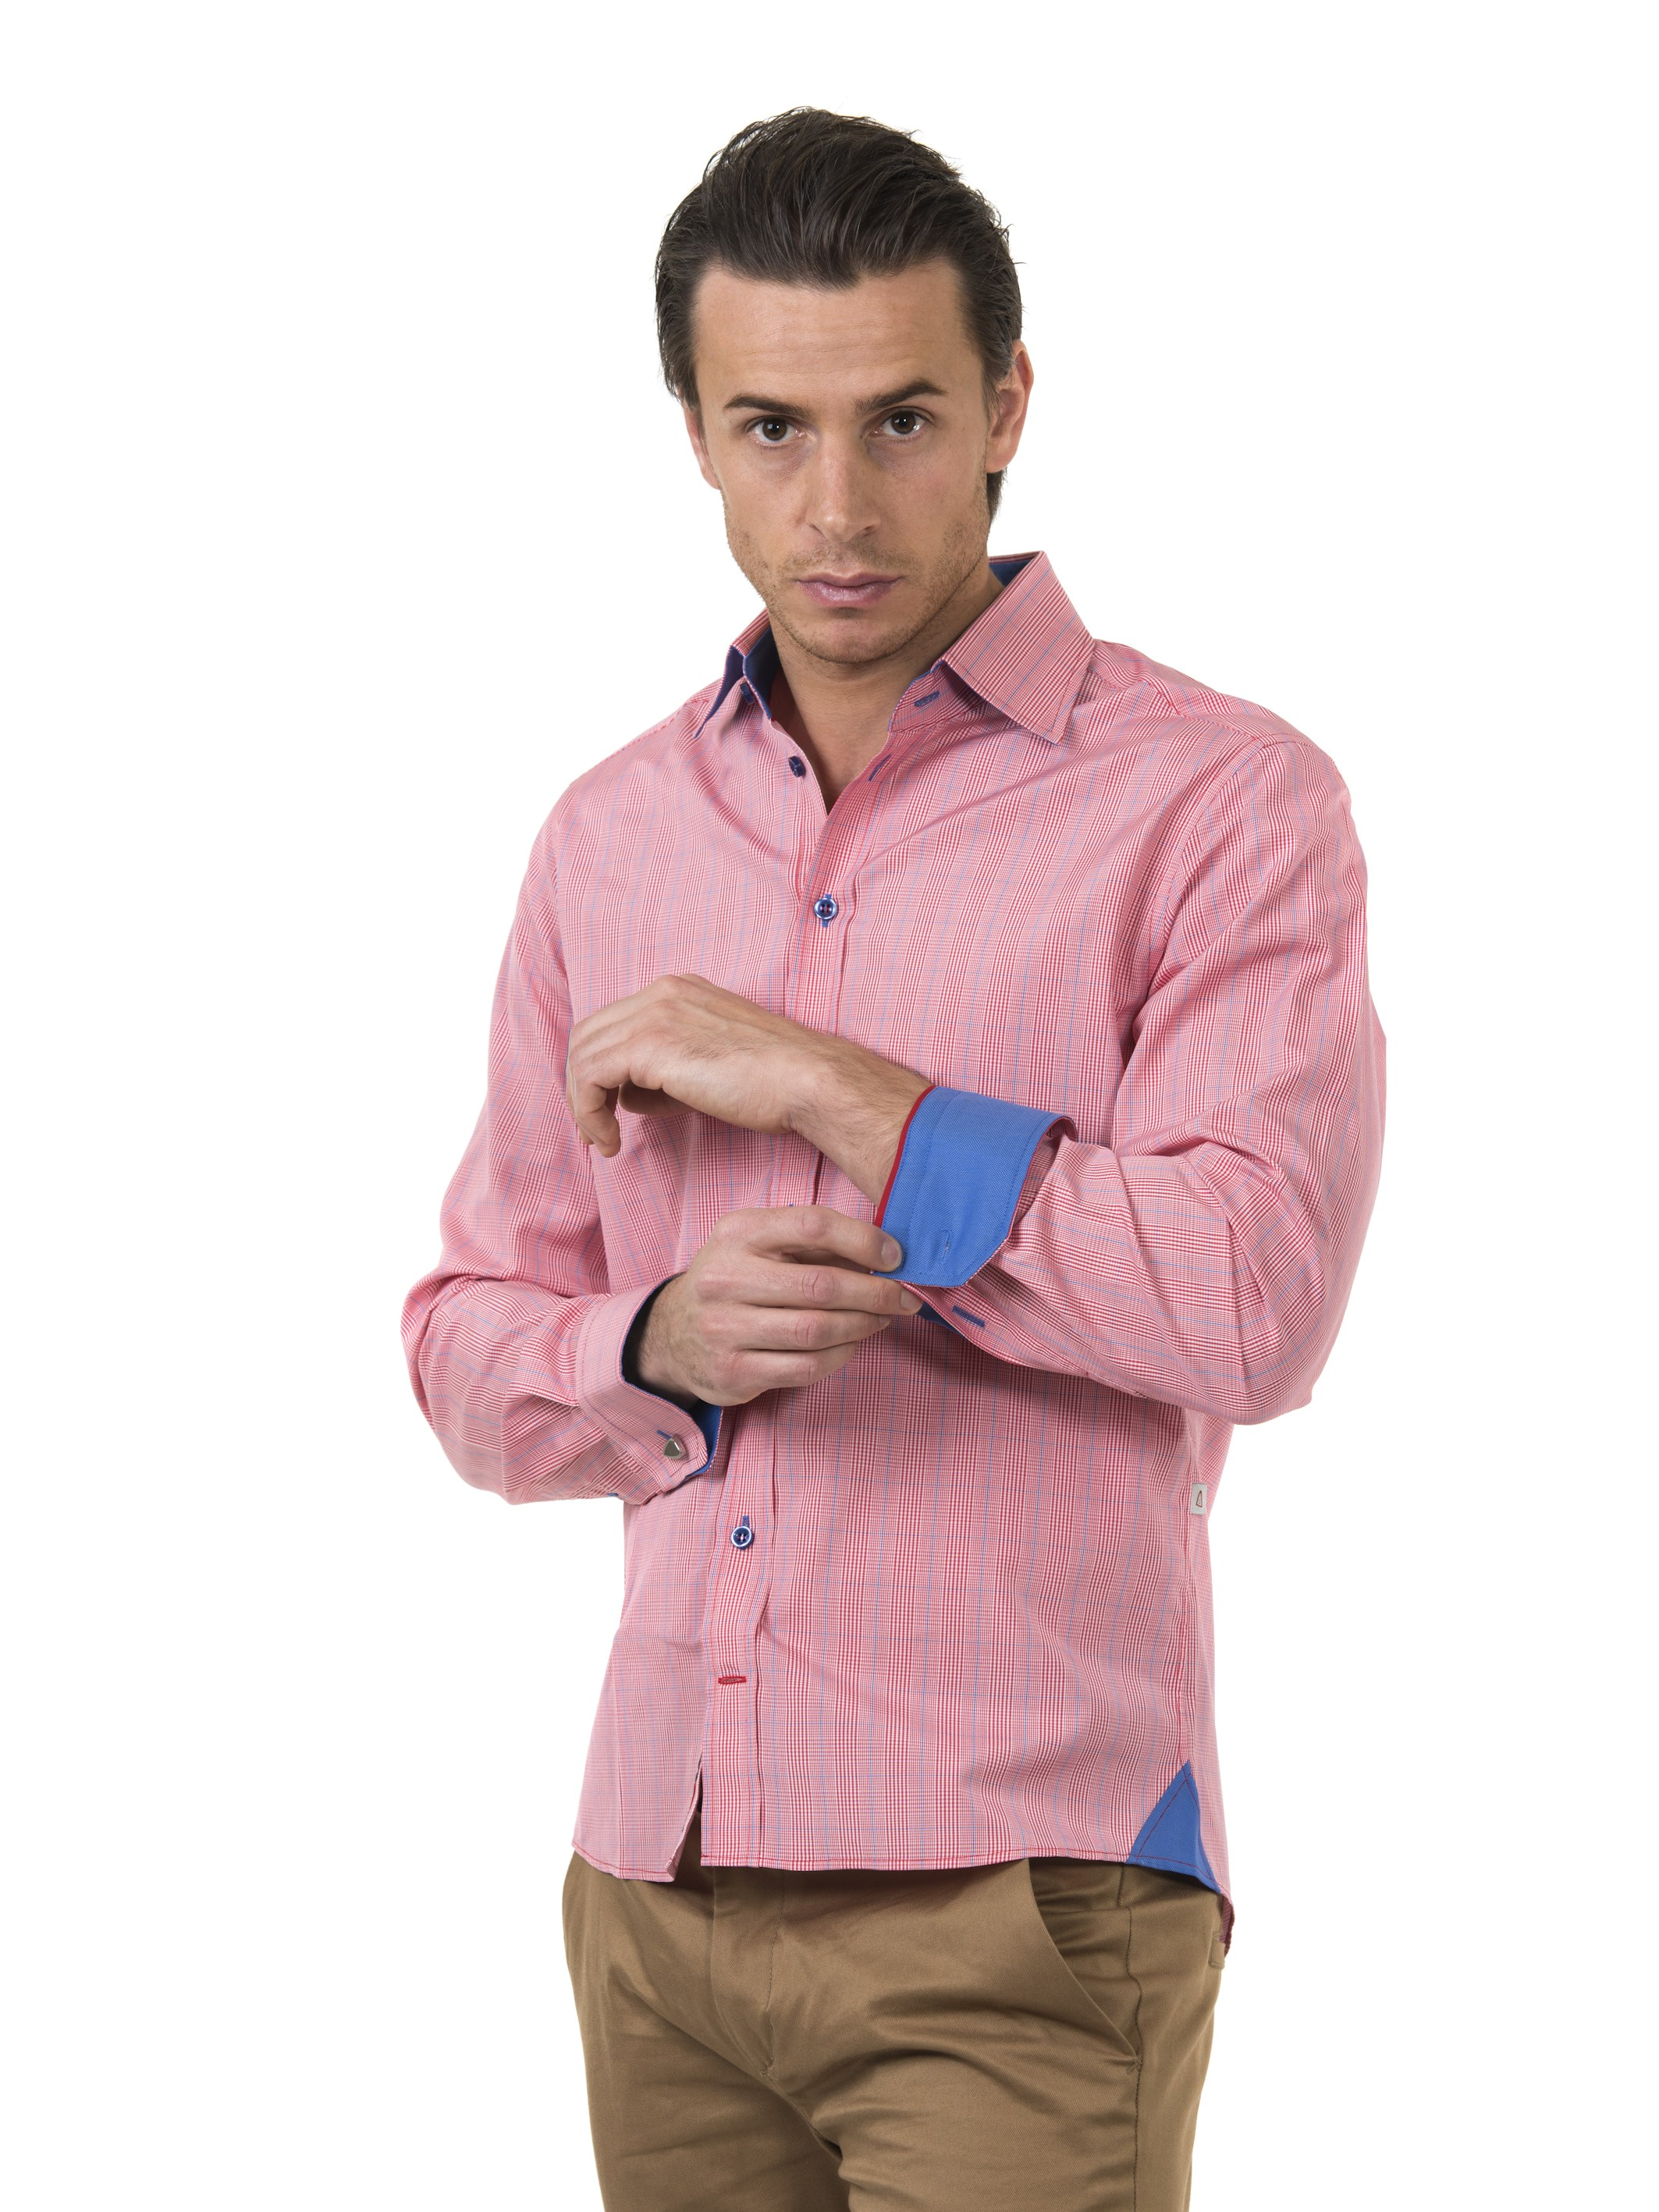 Profilskjorta Ljungström Red/Pink Checkered Slim fit storlek Large